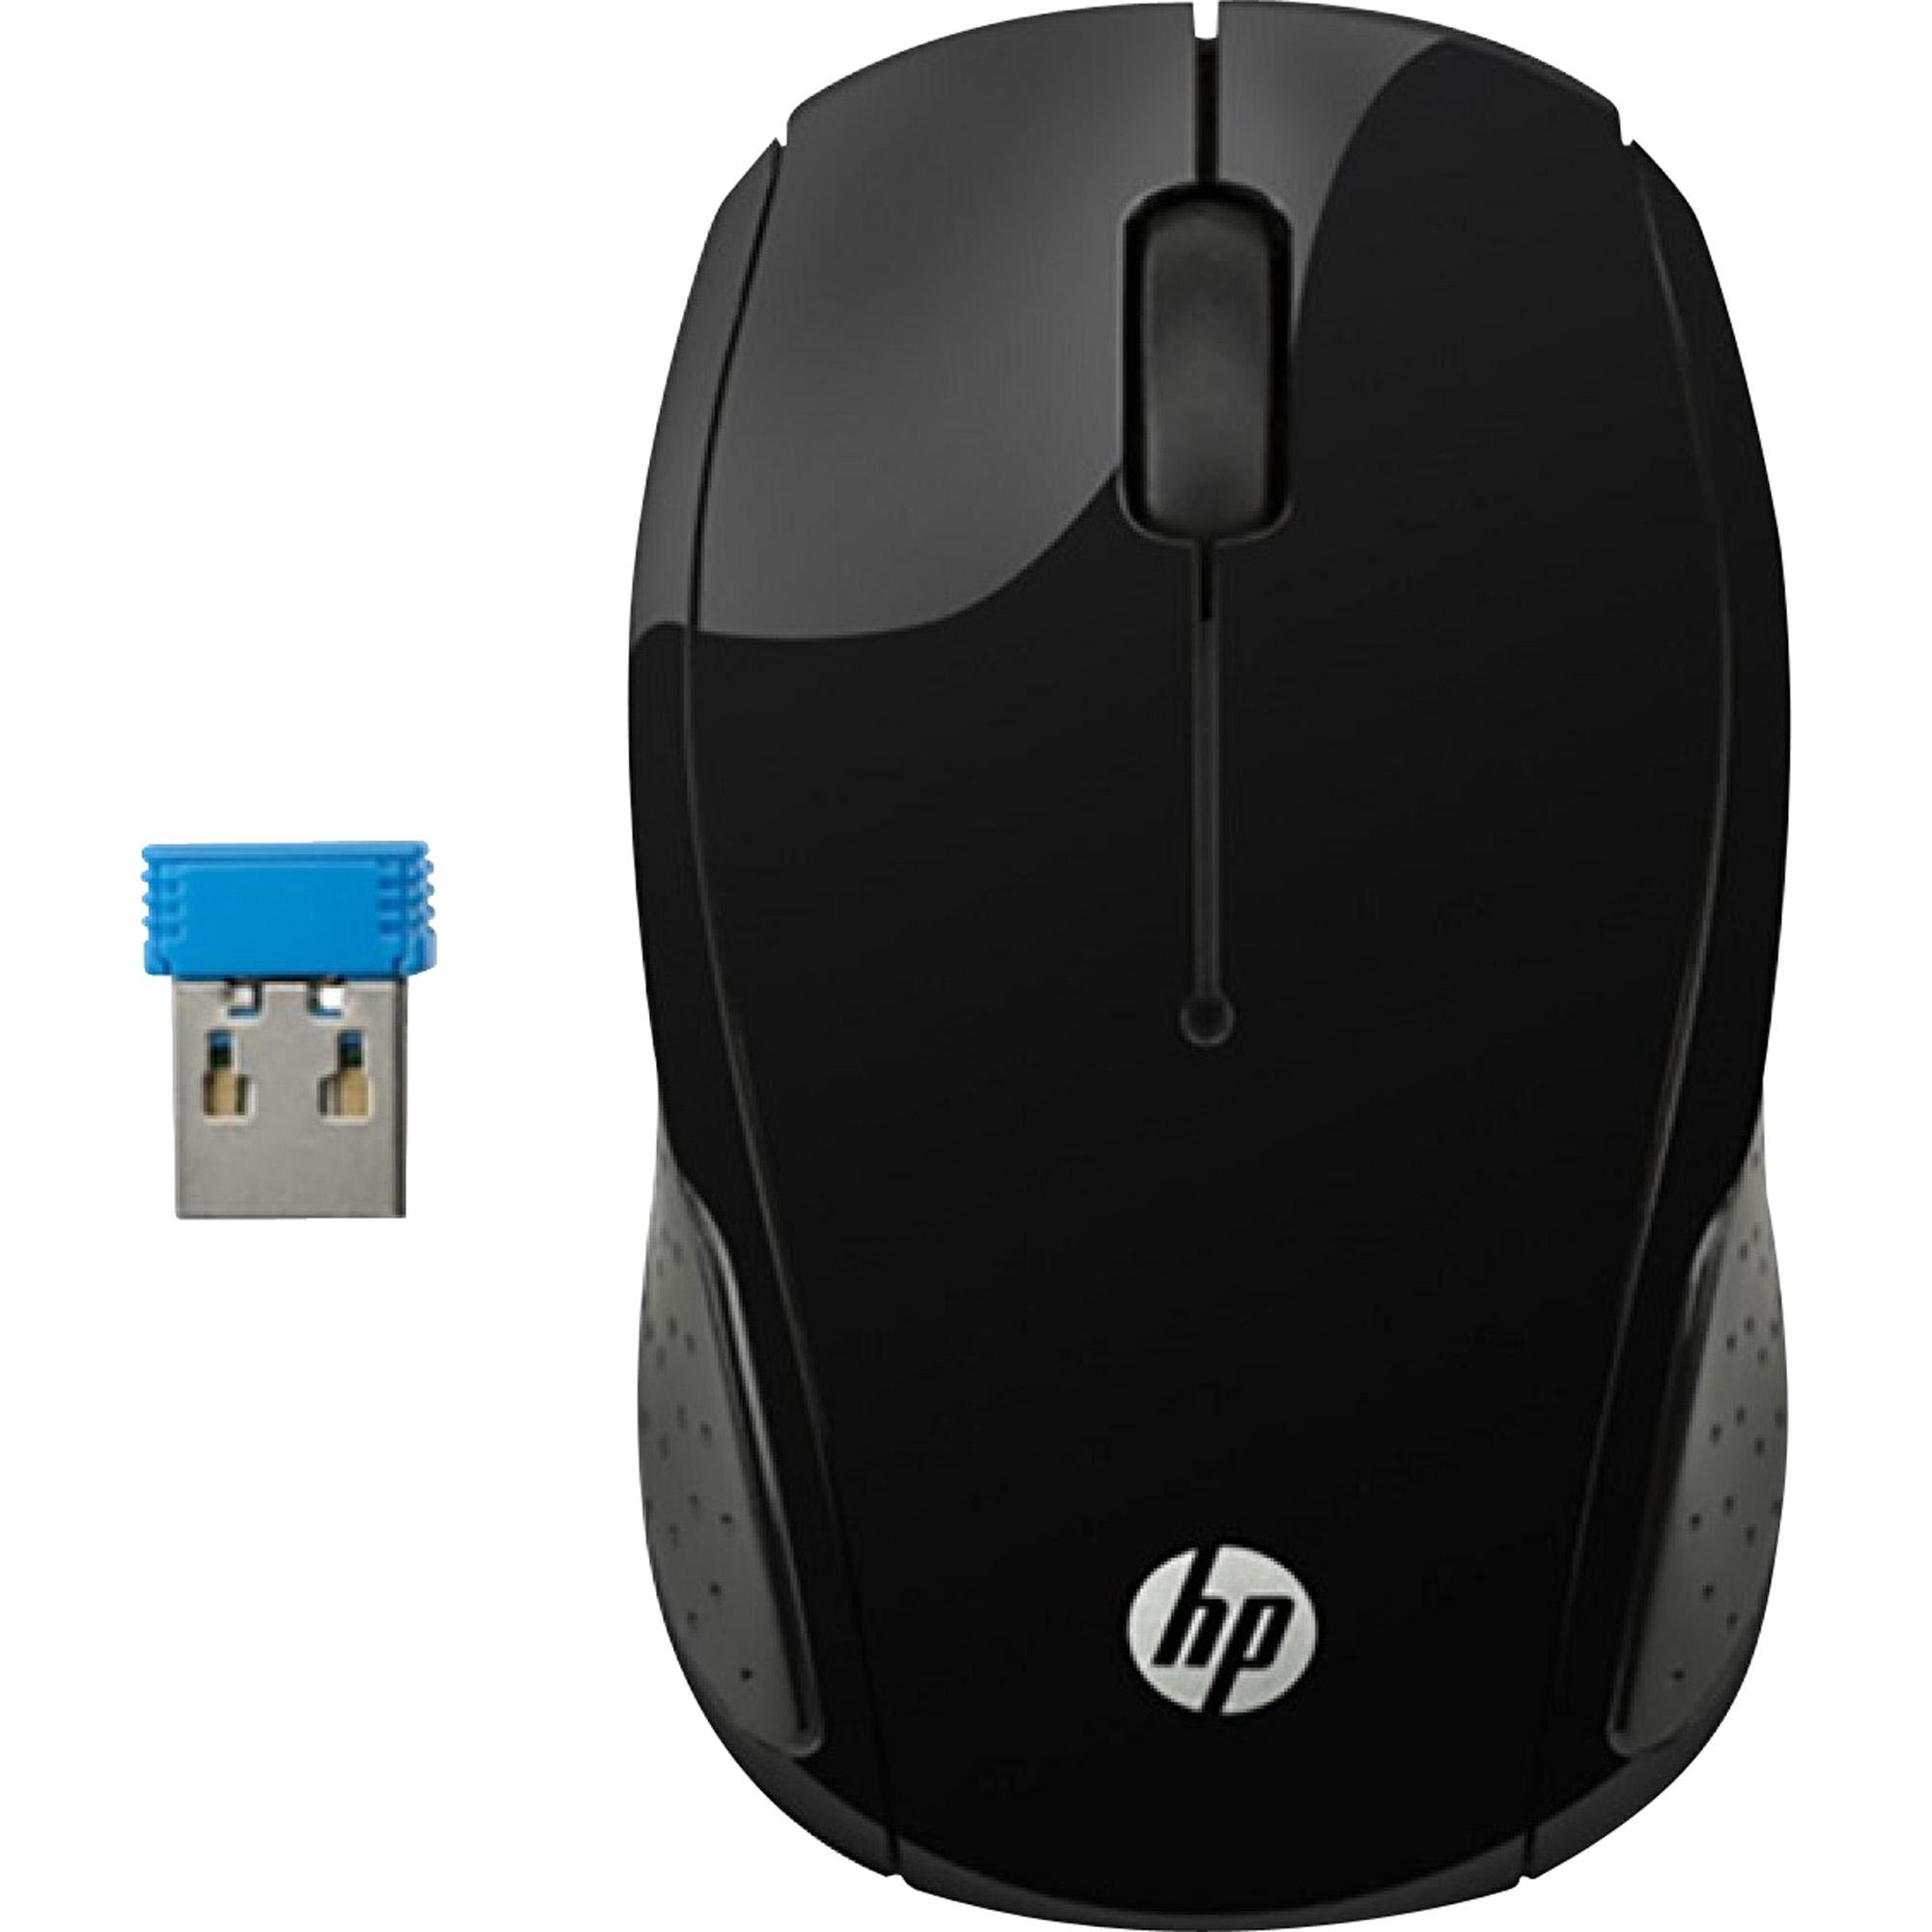 Mouse Wireless S/ Fio X200 Oman Preto HP